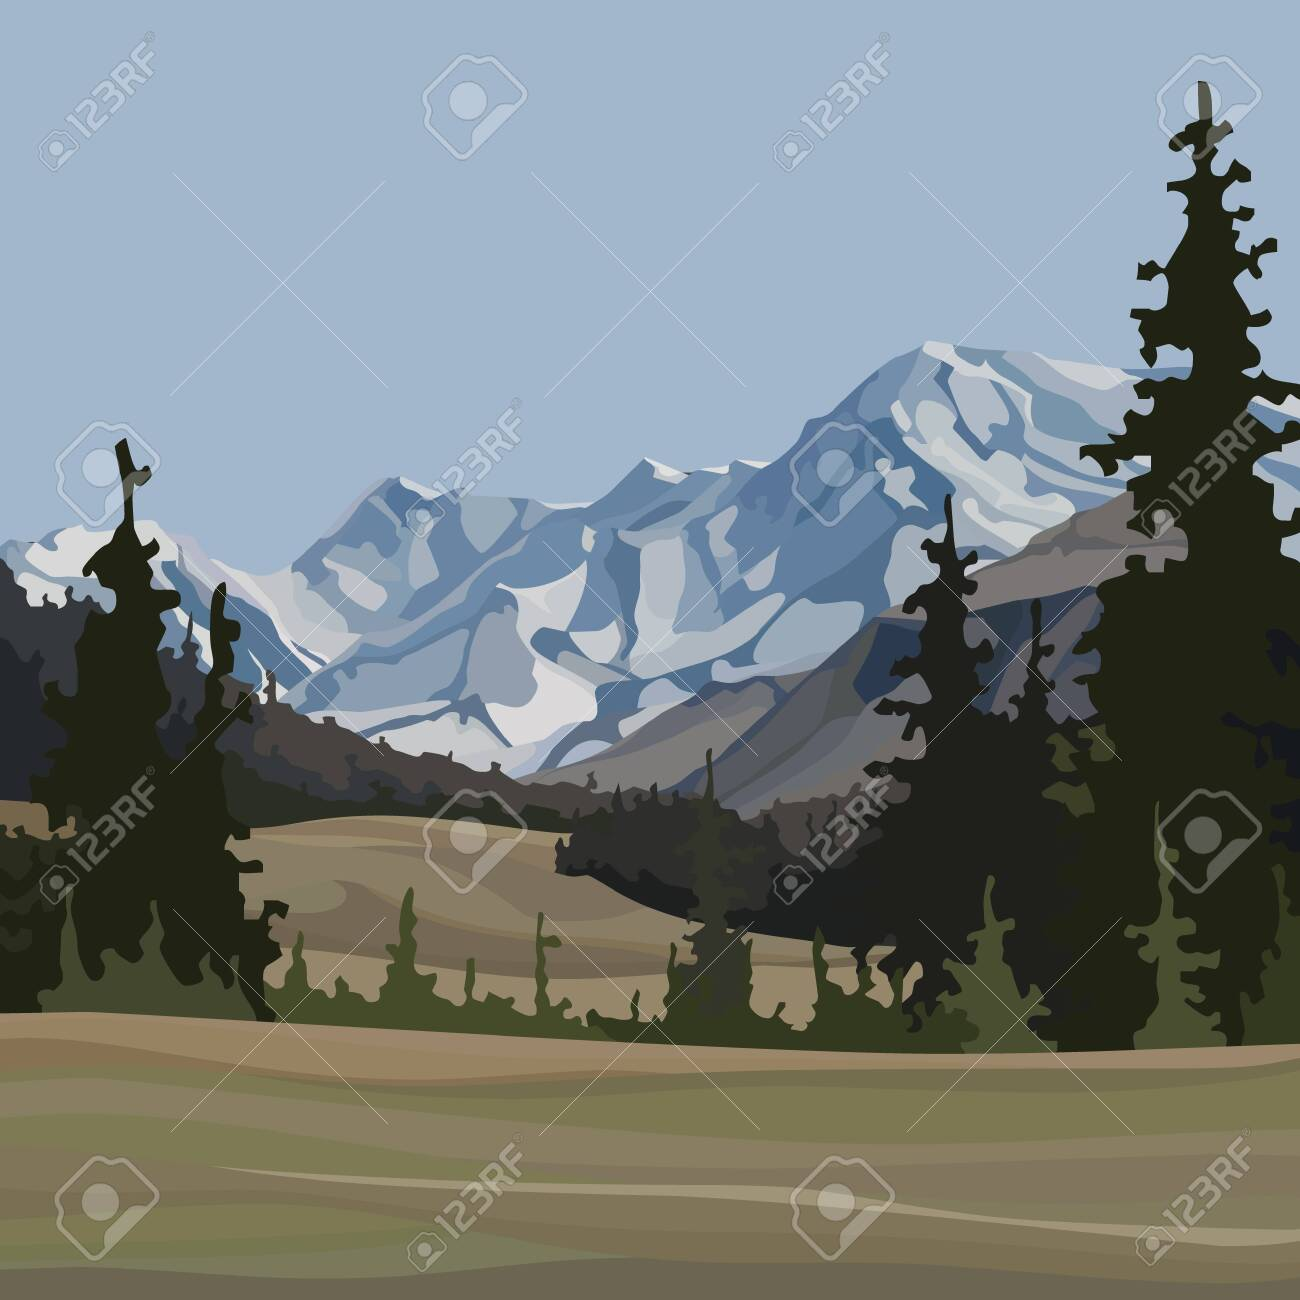 cartoon background of natural landscape with fir trees and snowy mountains - 151256766